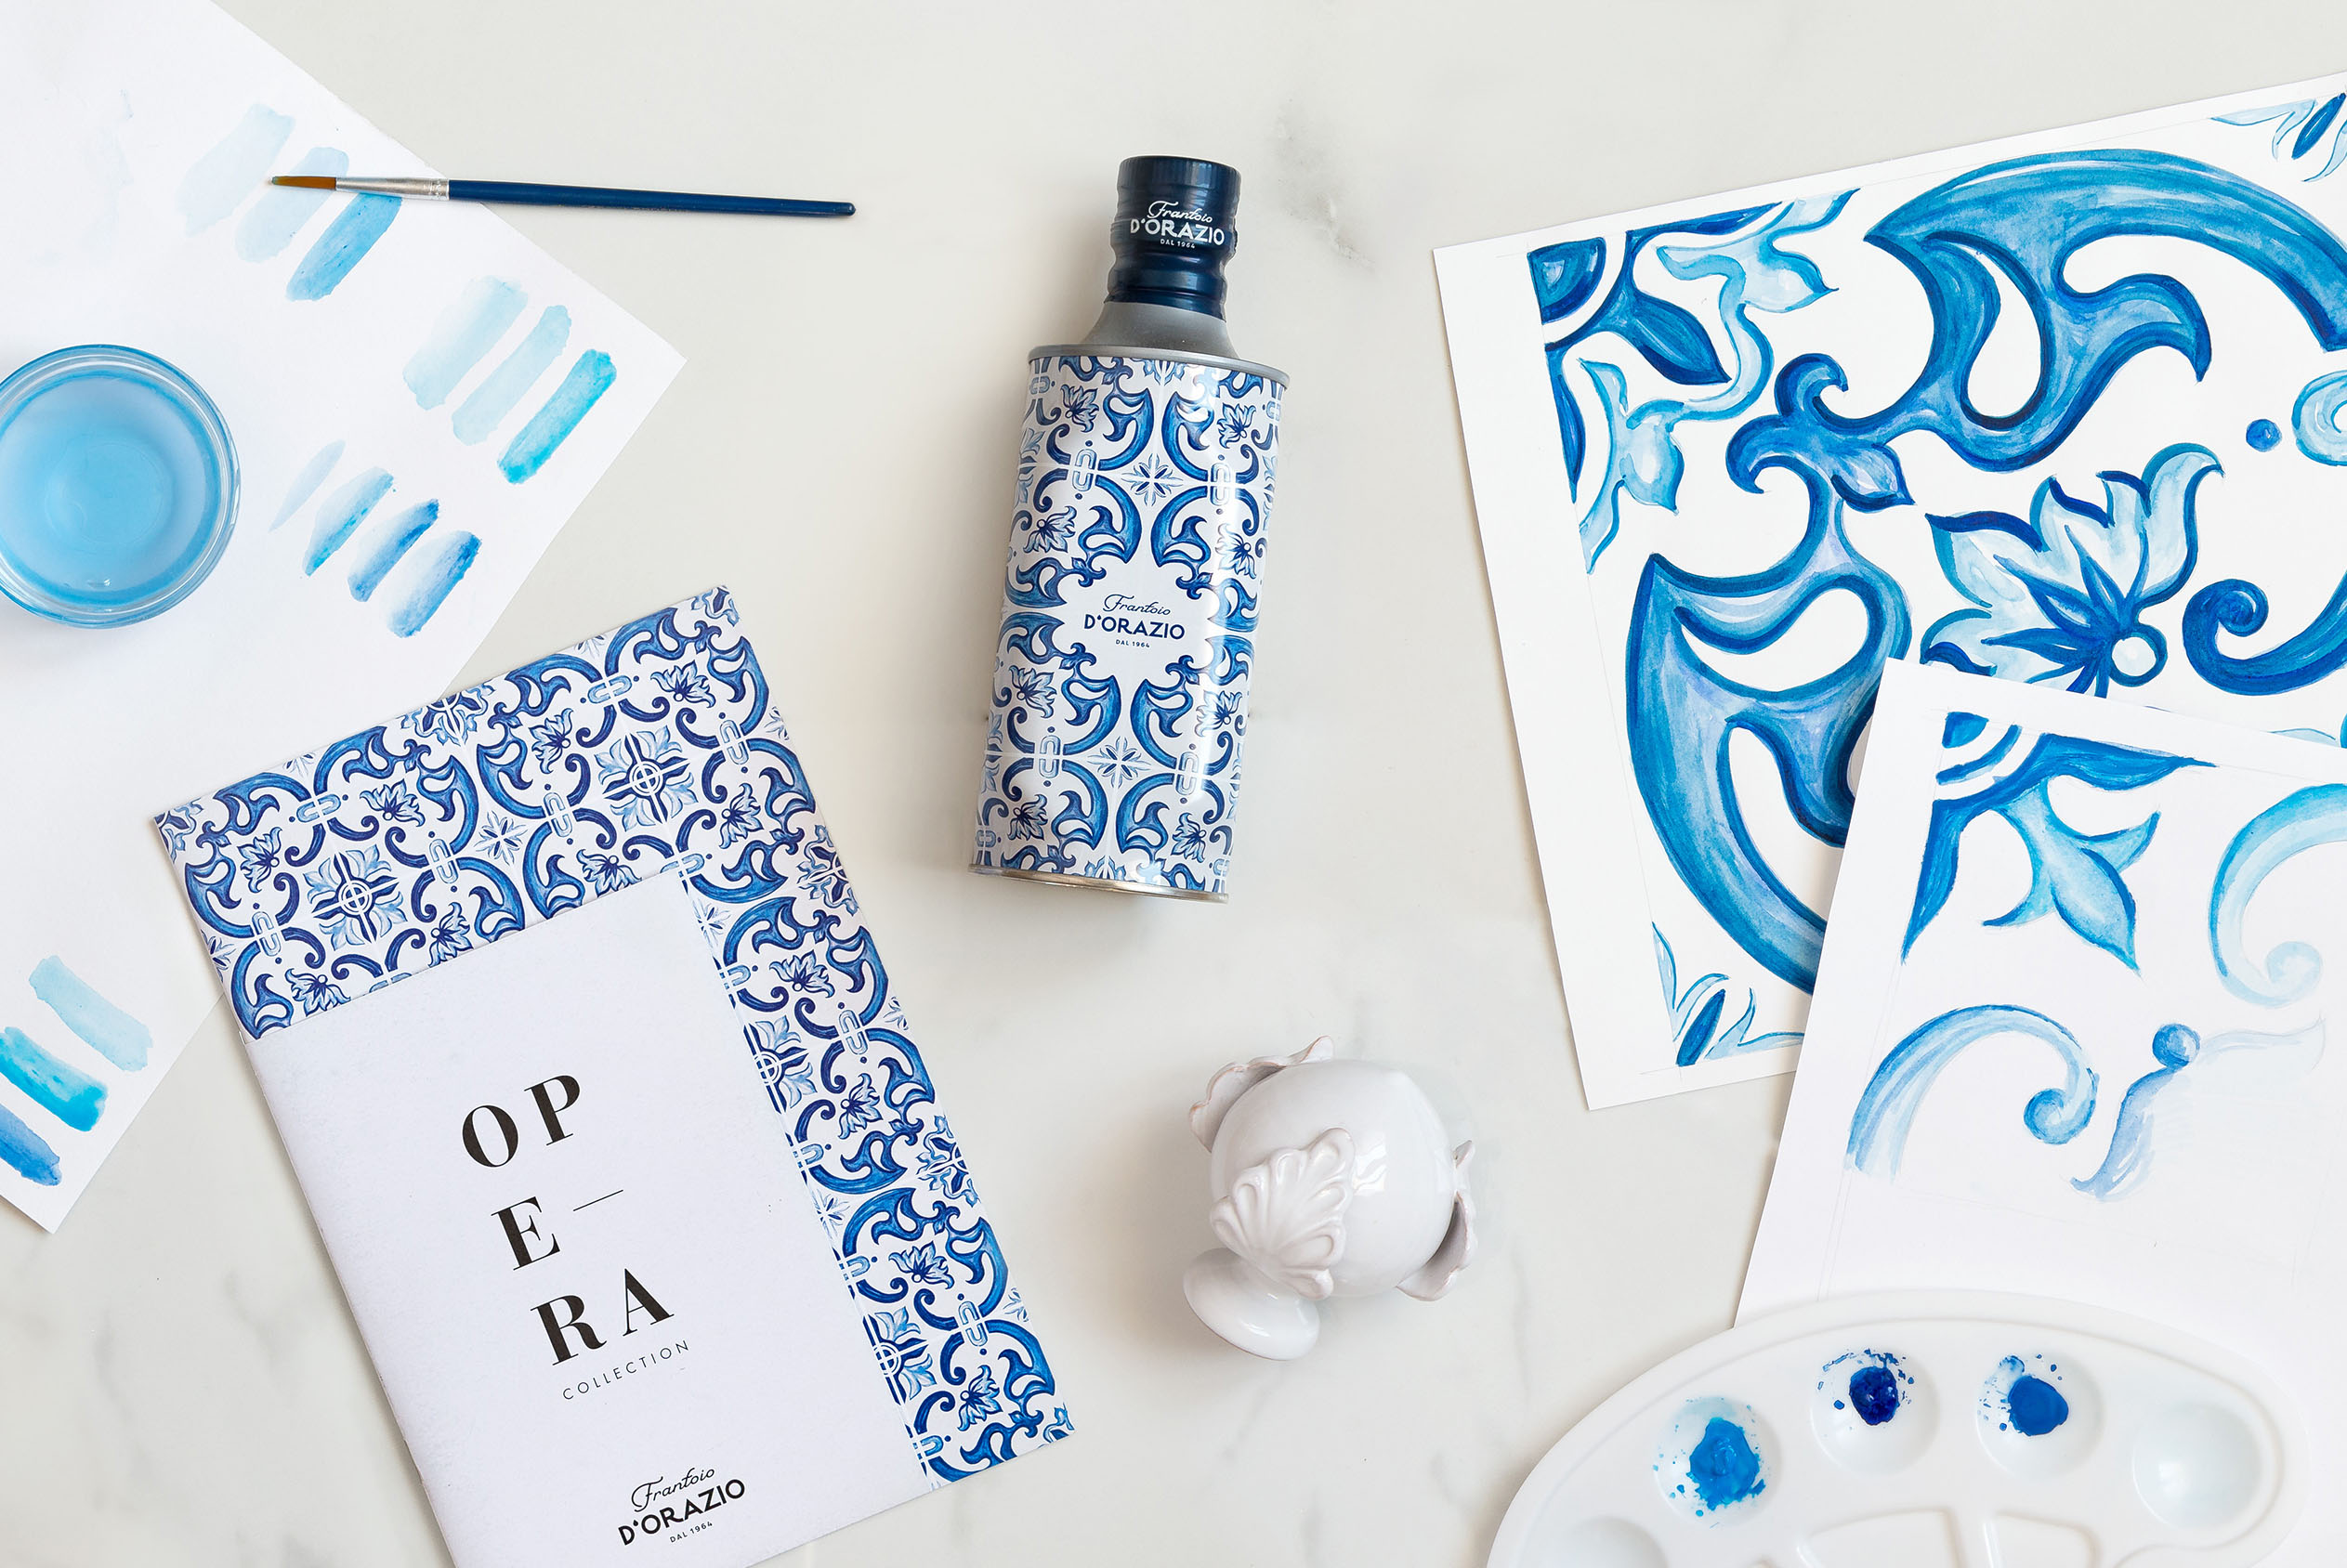 """Opera"" Maiolica Inspired Packaging for Frantoio D'Orazio Extra Virgin Olive Oil"